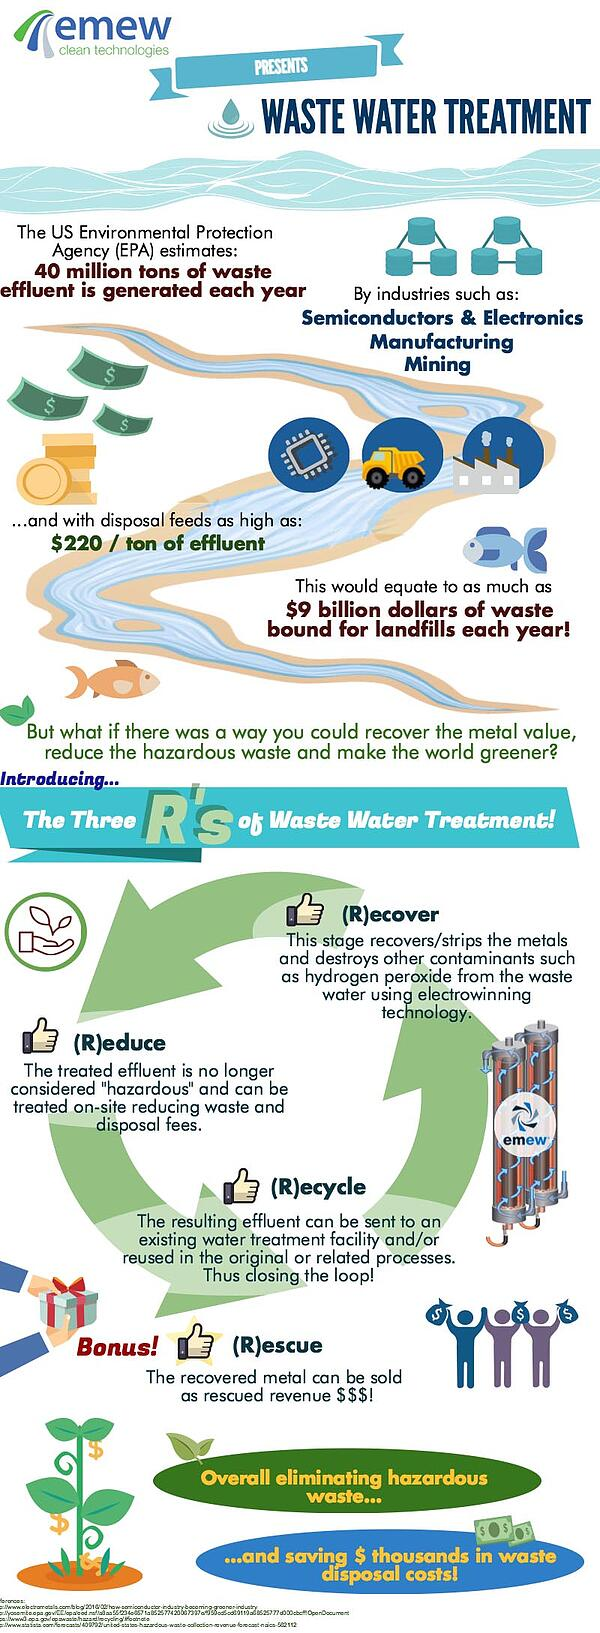 wastewater treatment-1